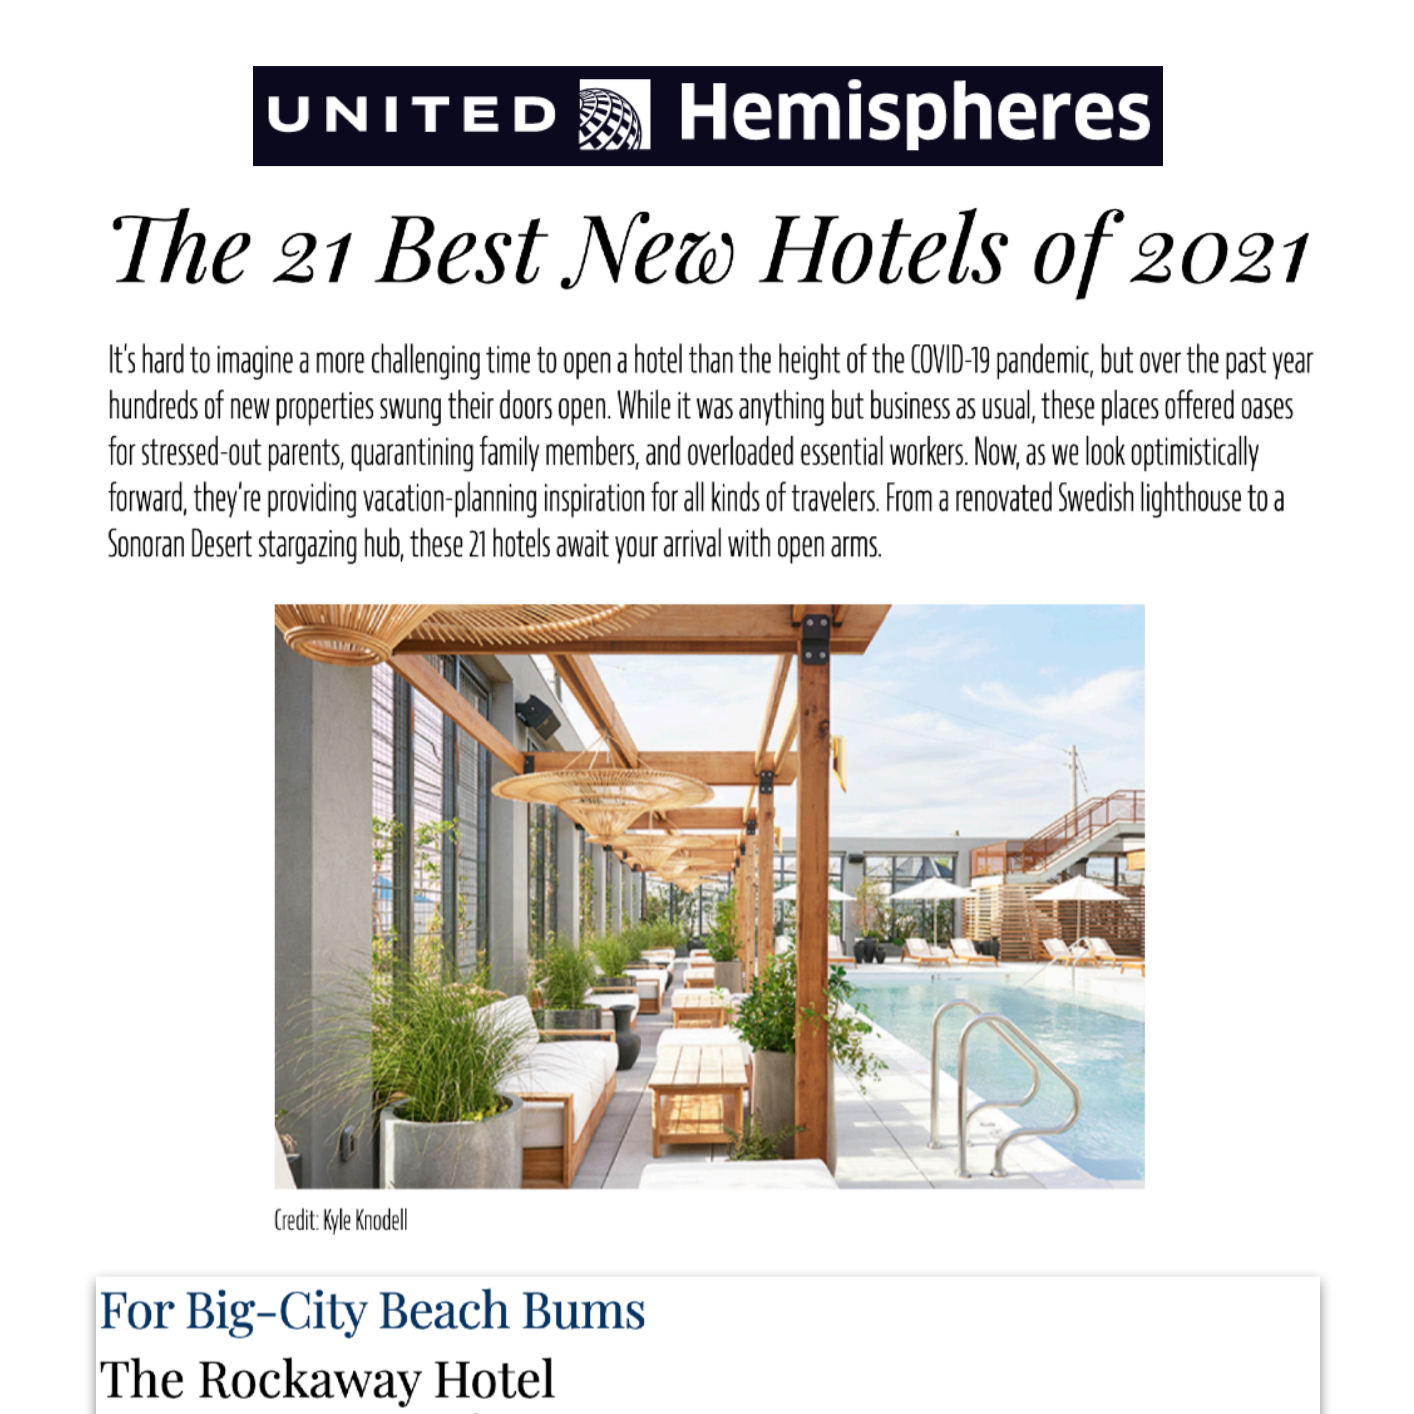 Article about The Rockaway Hotel in United Hemispheres